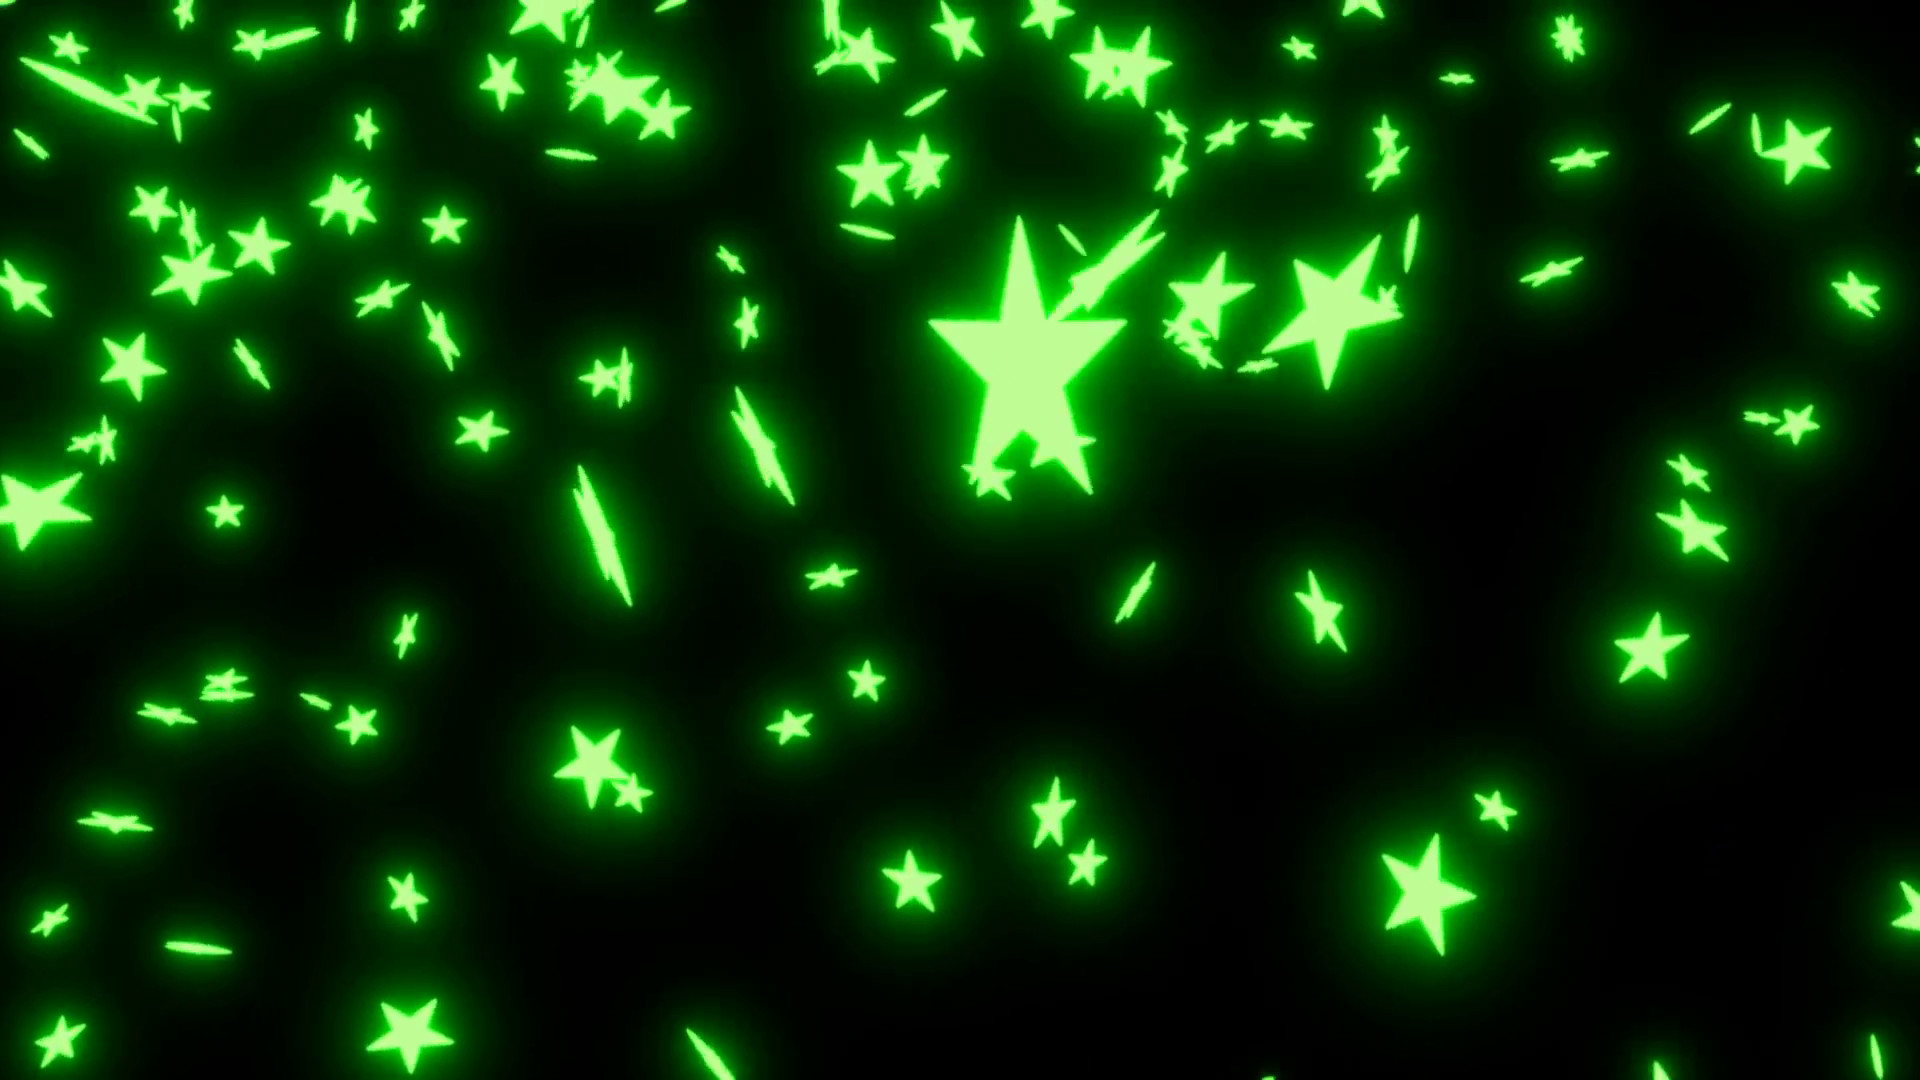 Subscription Library Animated falling neon green stars on black background  2.